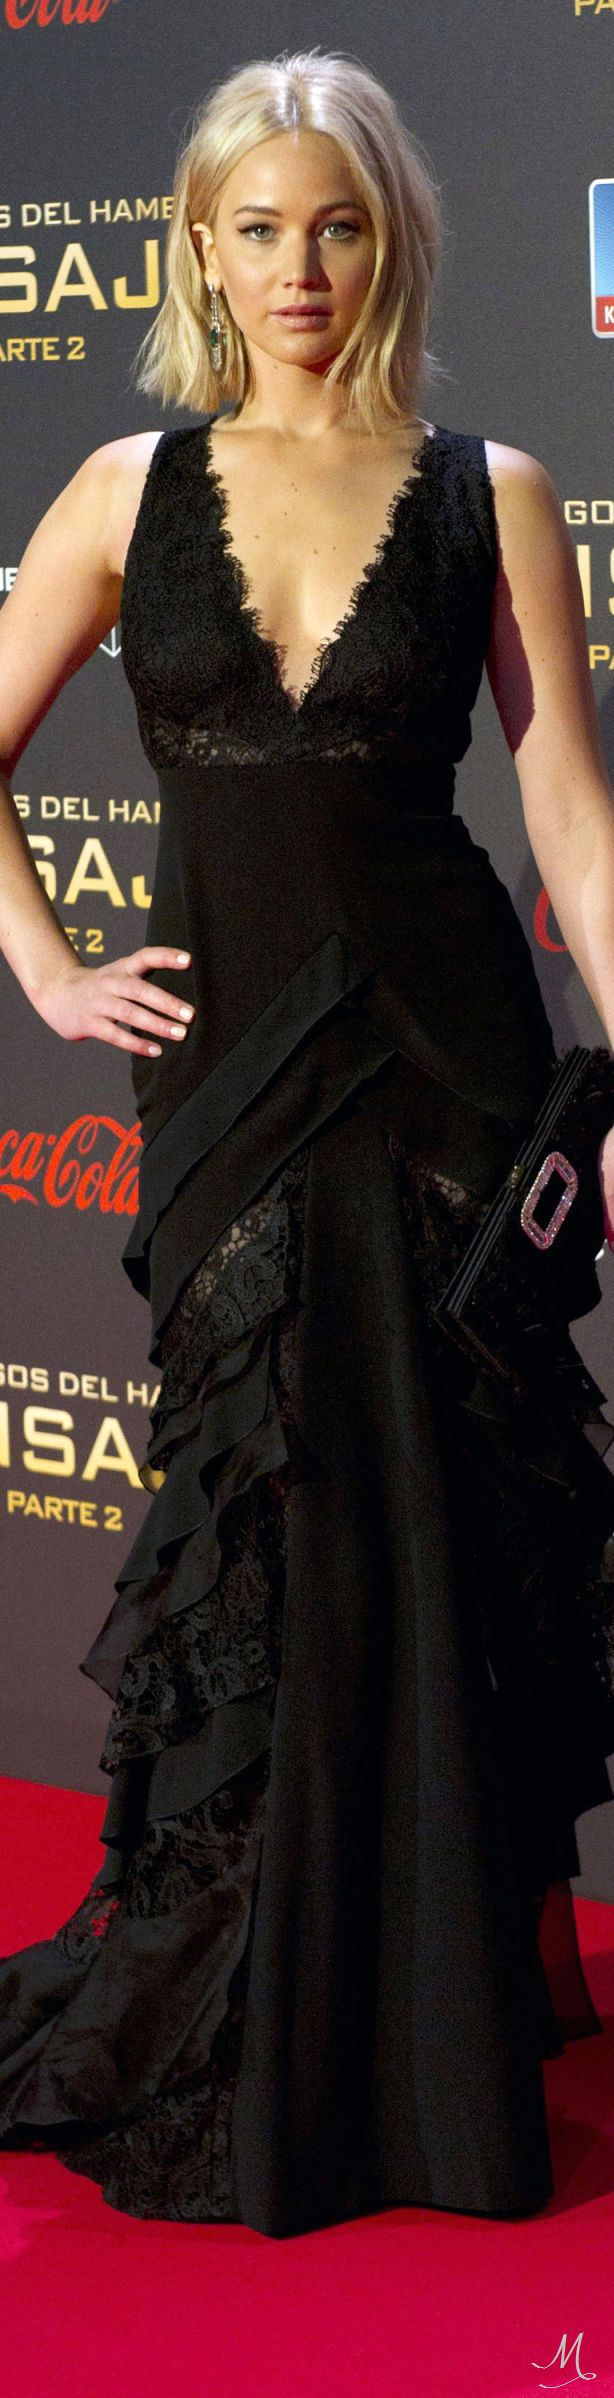 I still think she's beautiful!!  Jennifer Lawrence In Ralph Lauren at the Madrid premiere of 'Mockingjay Part 2'